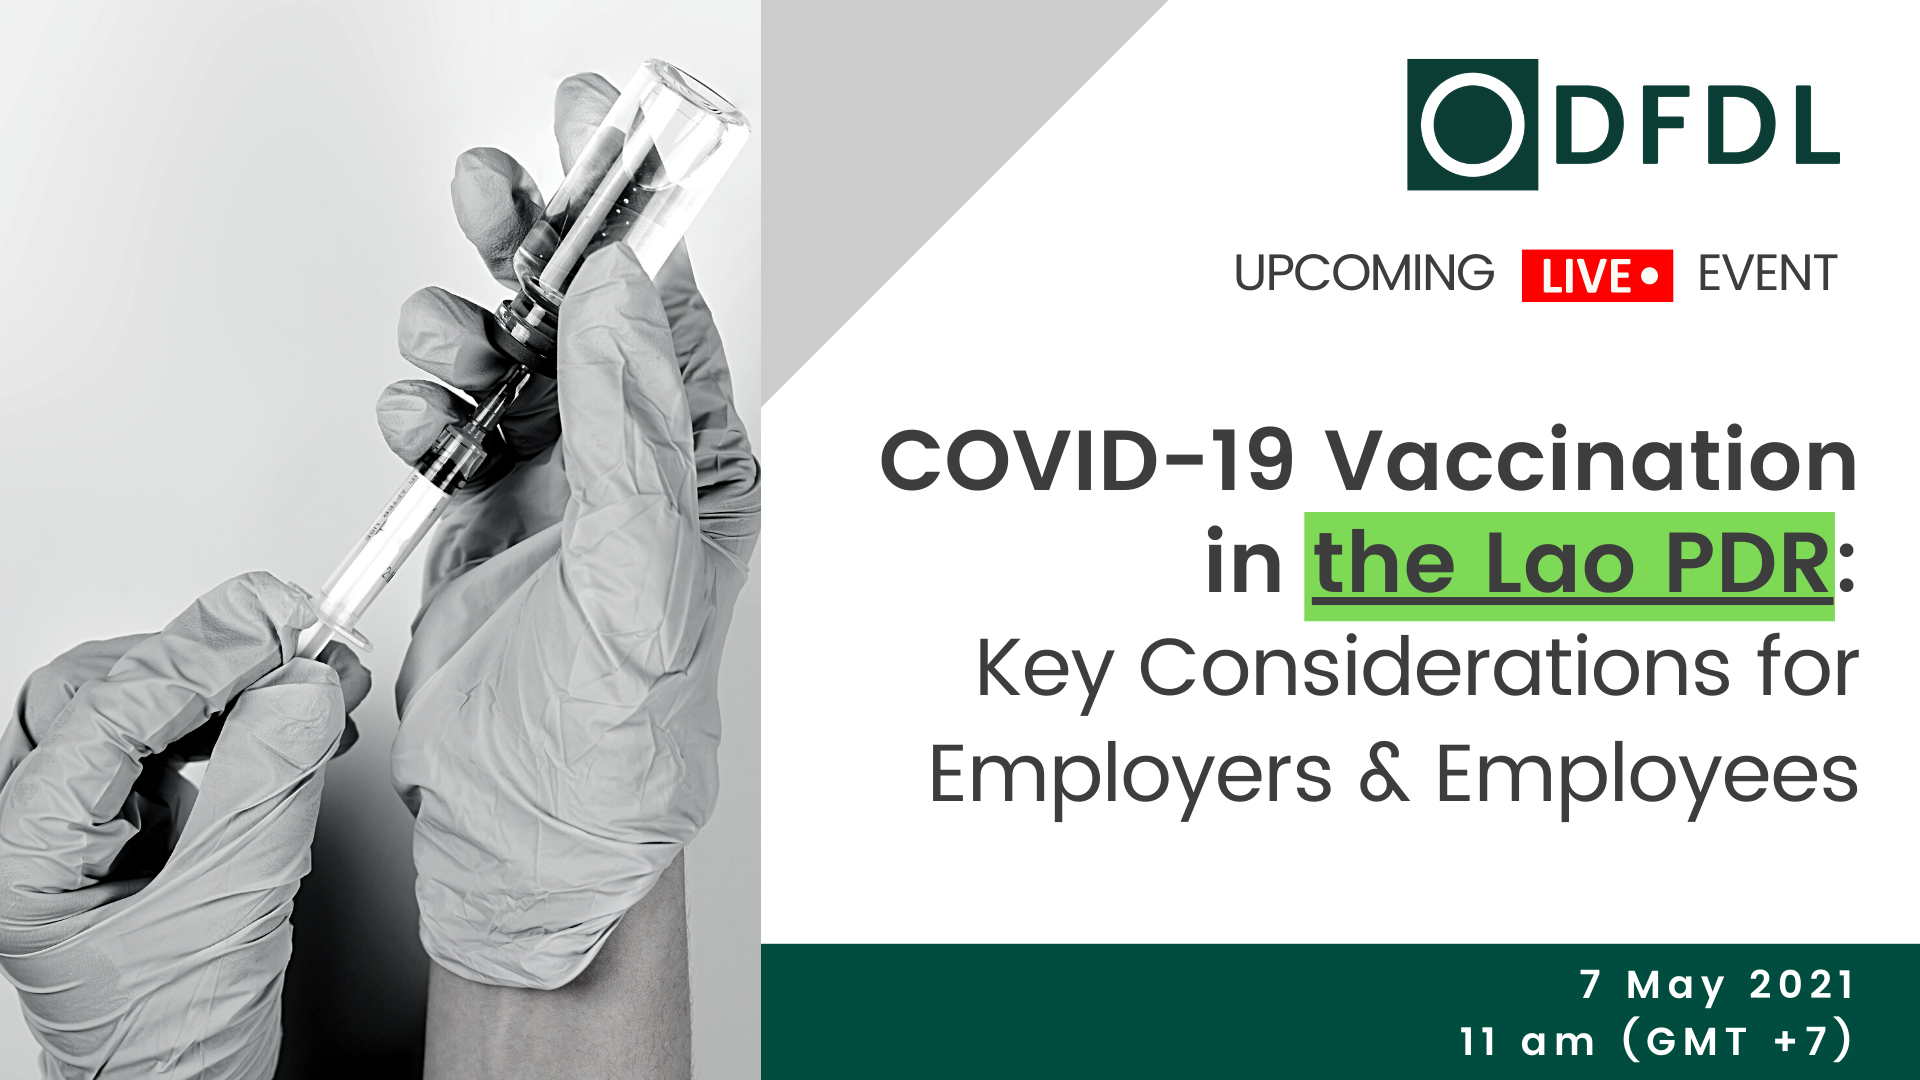 COVID-19 Vaccination in the Lao PDR: Key Considerations for Employers & Employees